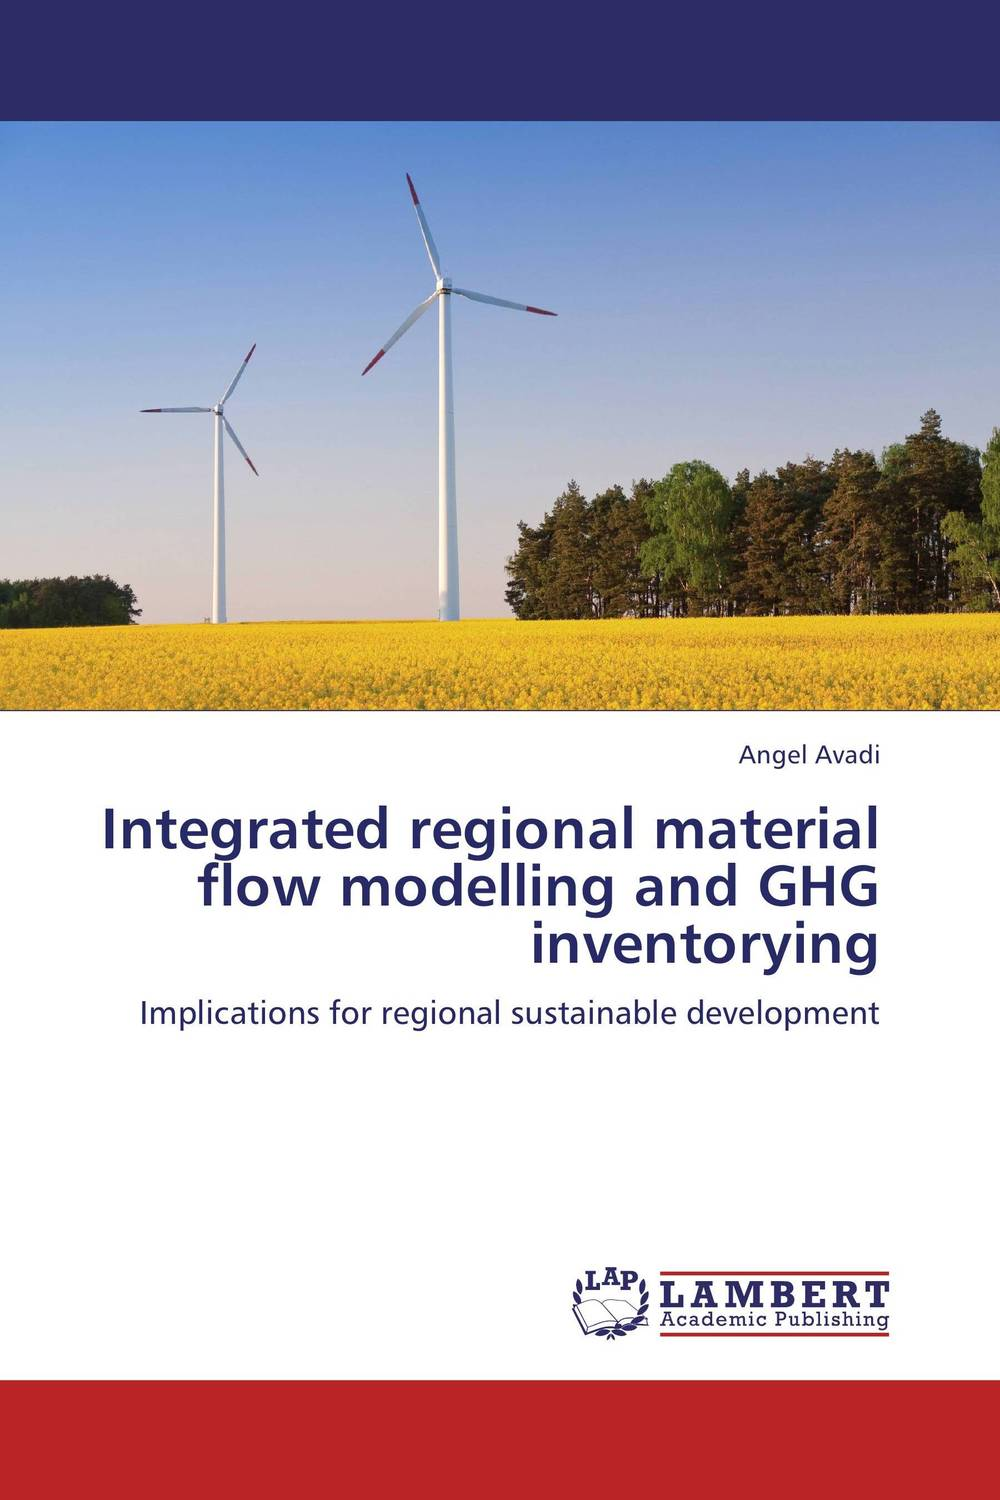 Integrated regional material flow modelling and GHG inventorying imperfectly stirred reactor modelling of recirculating reactive flows